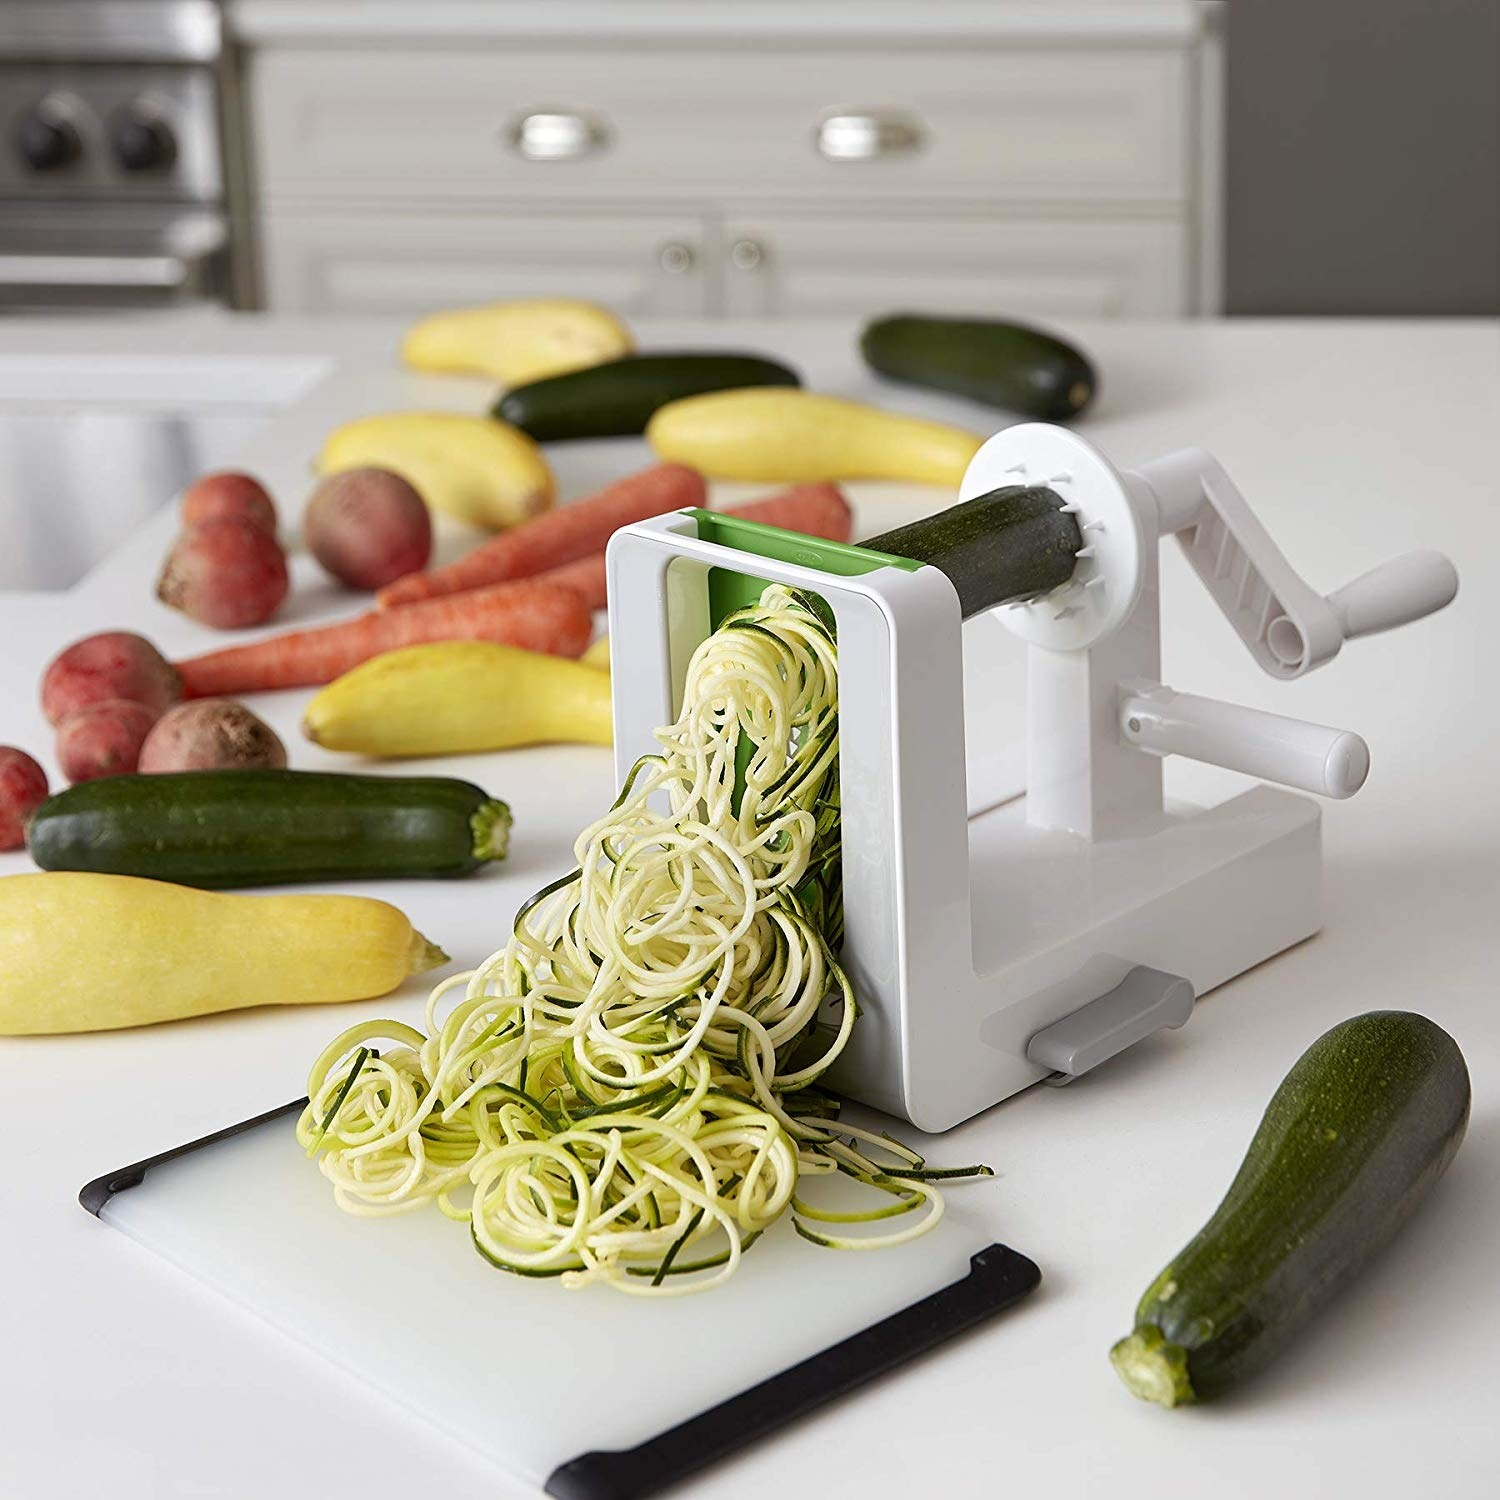 A zucchini being turn into curly noodles using a spiralizer machine